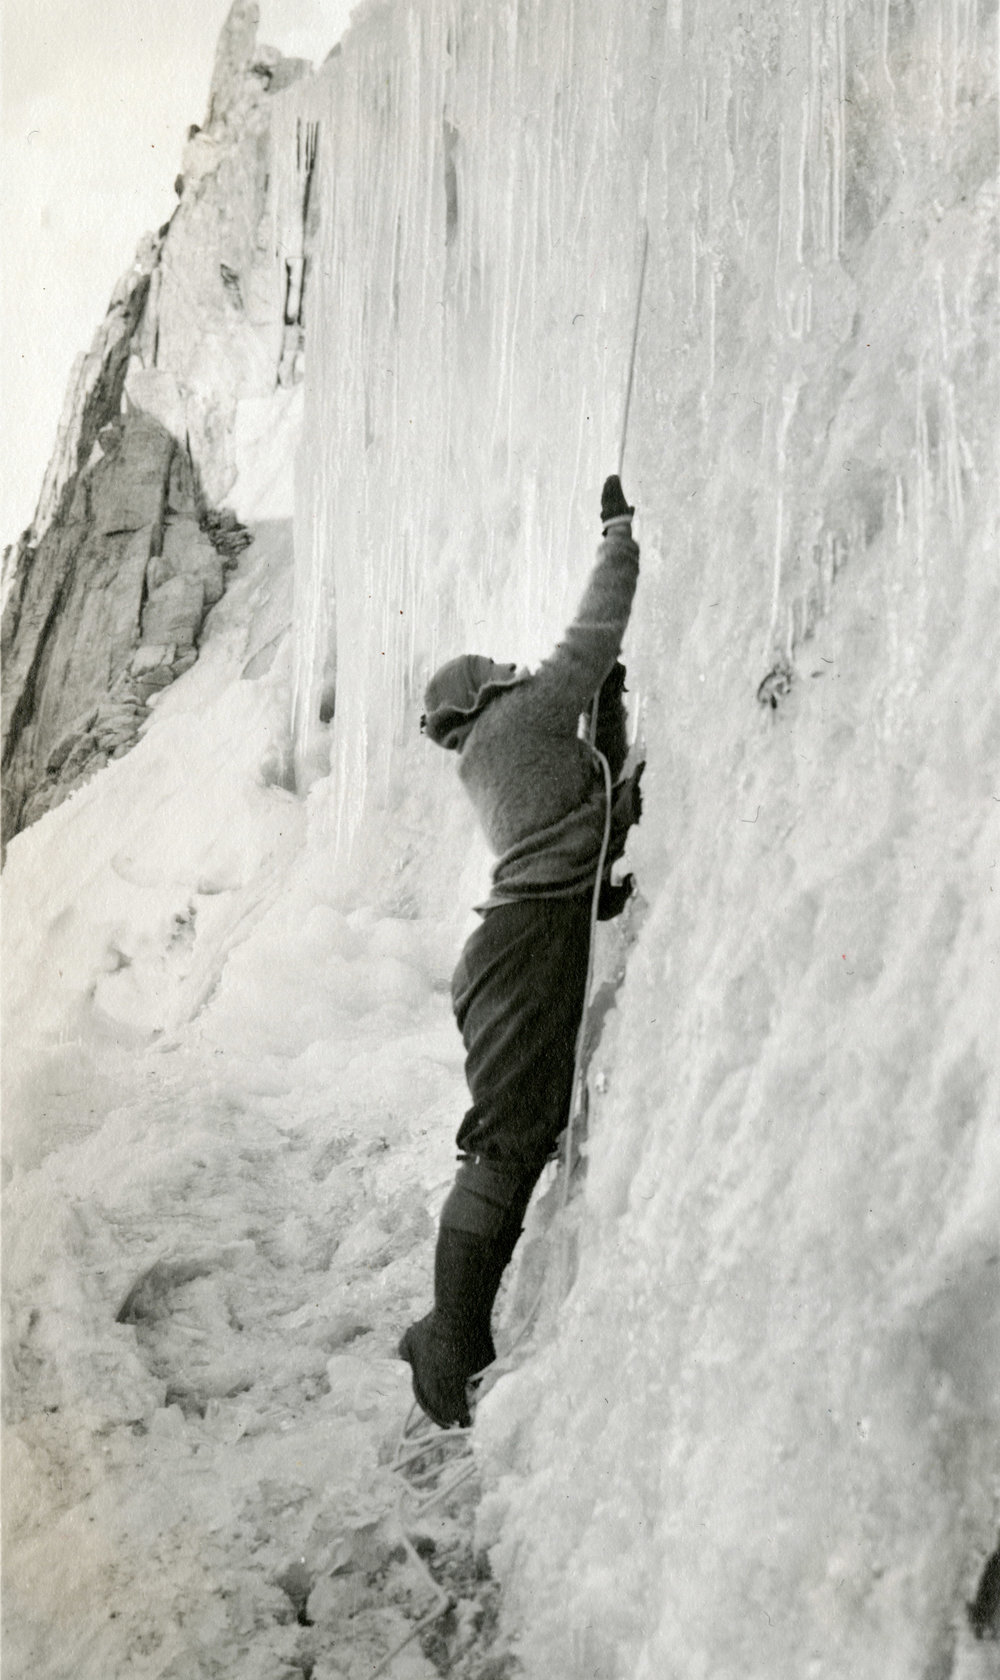 Elmina Buhl dropping into a bergschrund on Fremont Glacier in 1924